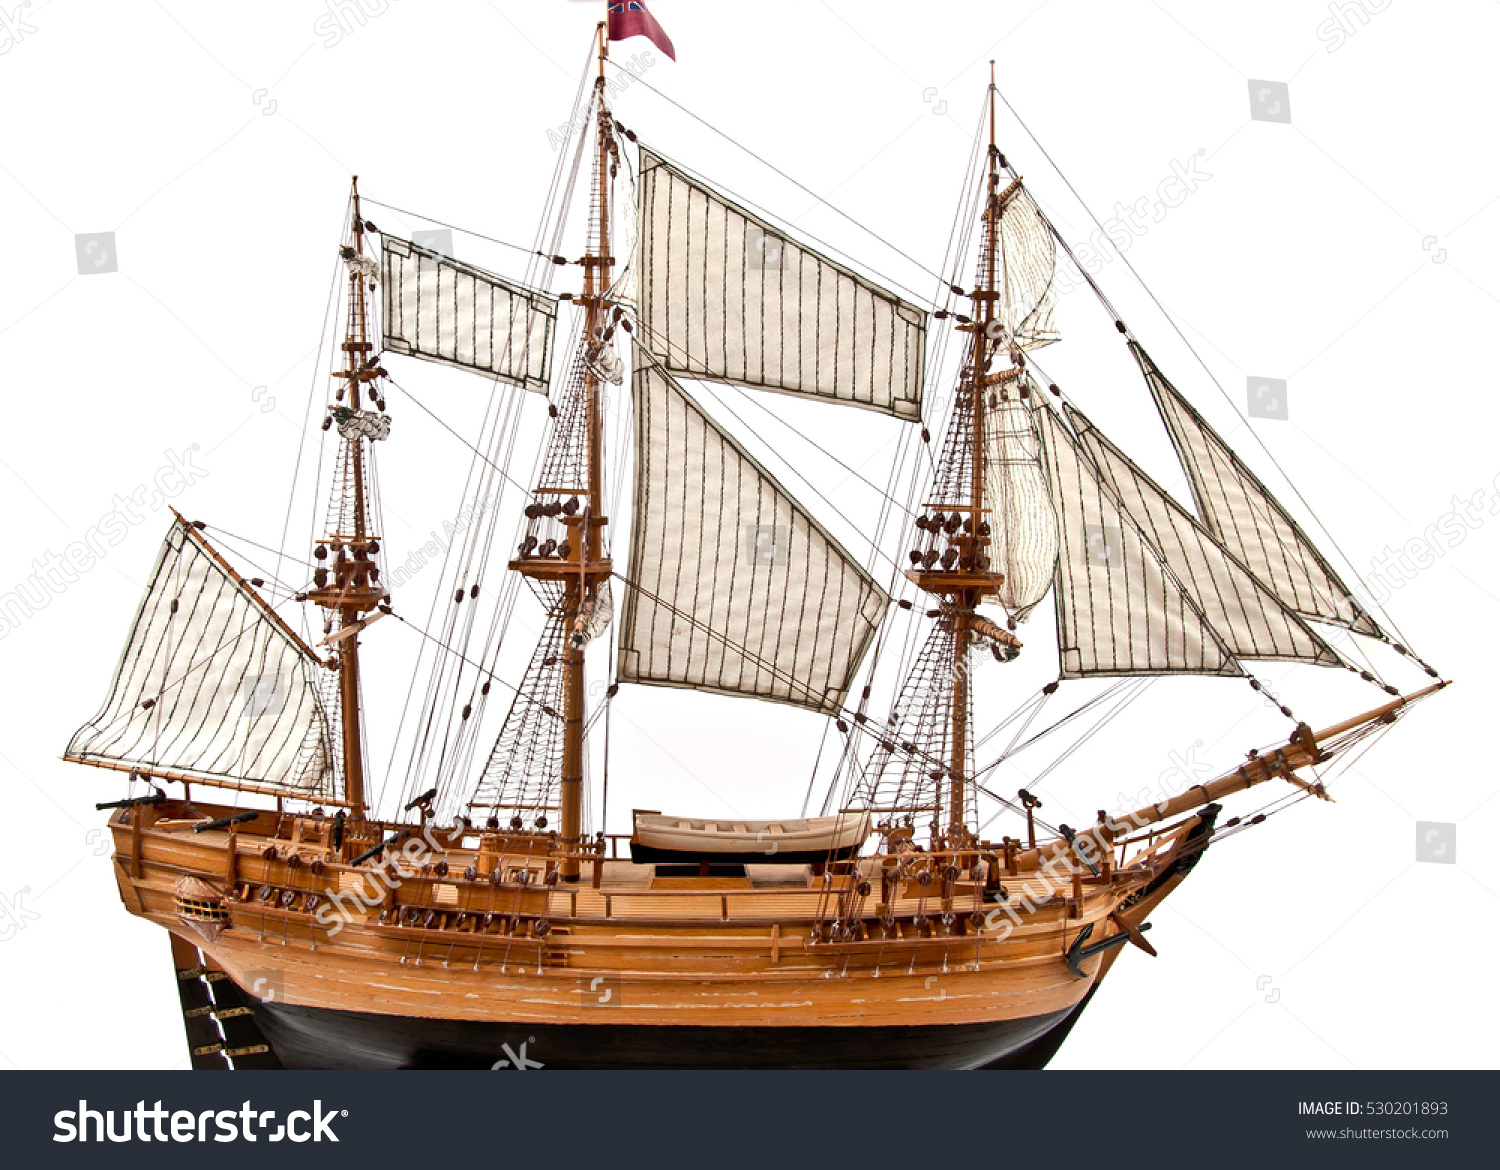 Il fascino dei velieri Stock-photo-model-of-wooden-sailing-ship-with-three-mast-isolated-on-white-530201893